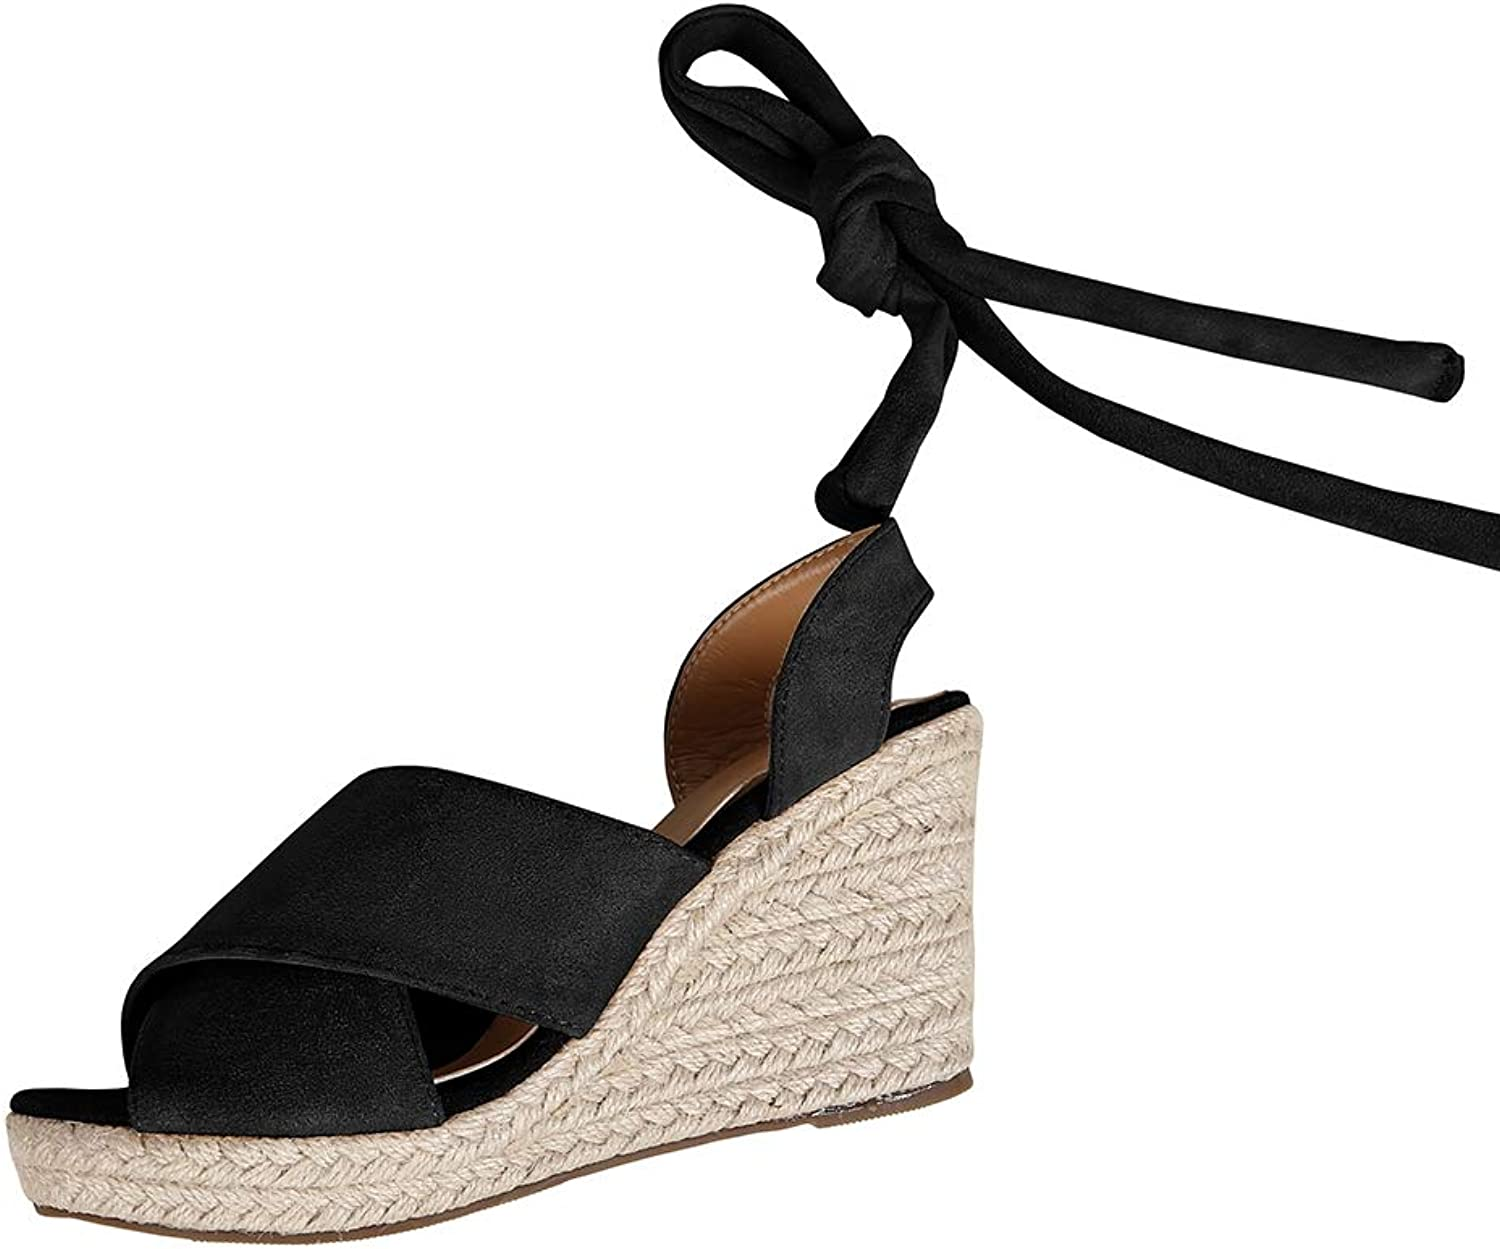 Syktkmx Womens Espadrille Platform Wedge Peep Toe Lace up Ankle Wrap Mid Heel Suede Sandals